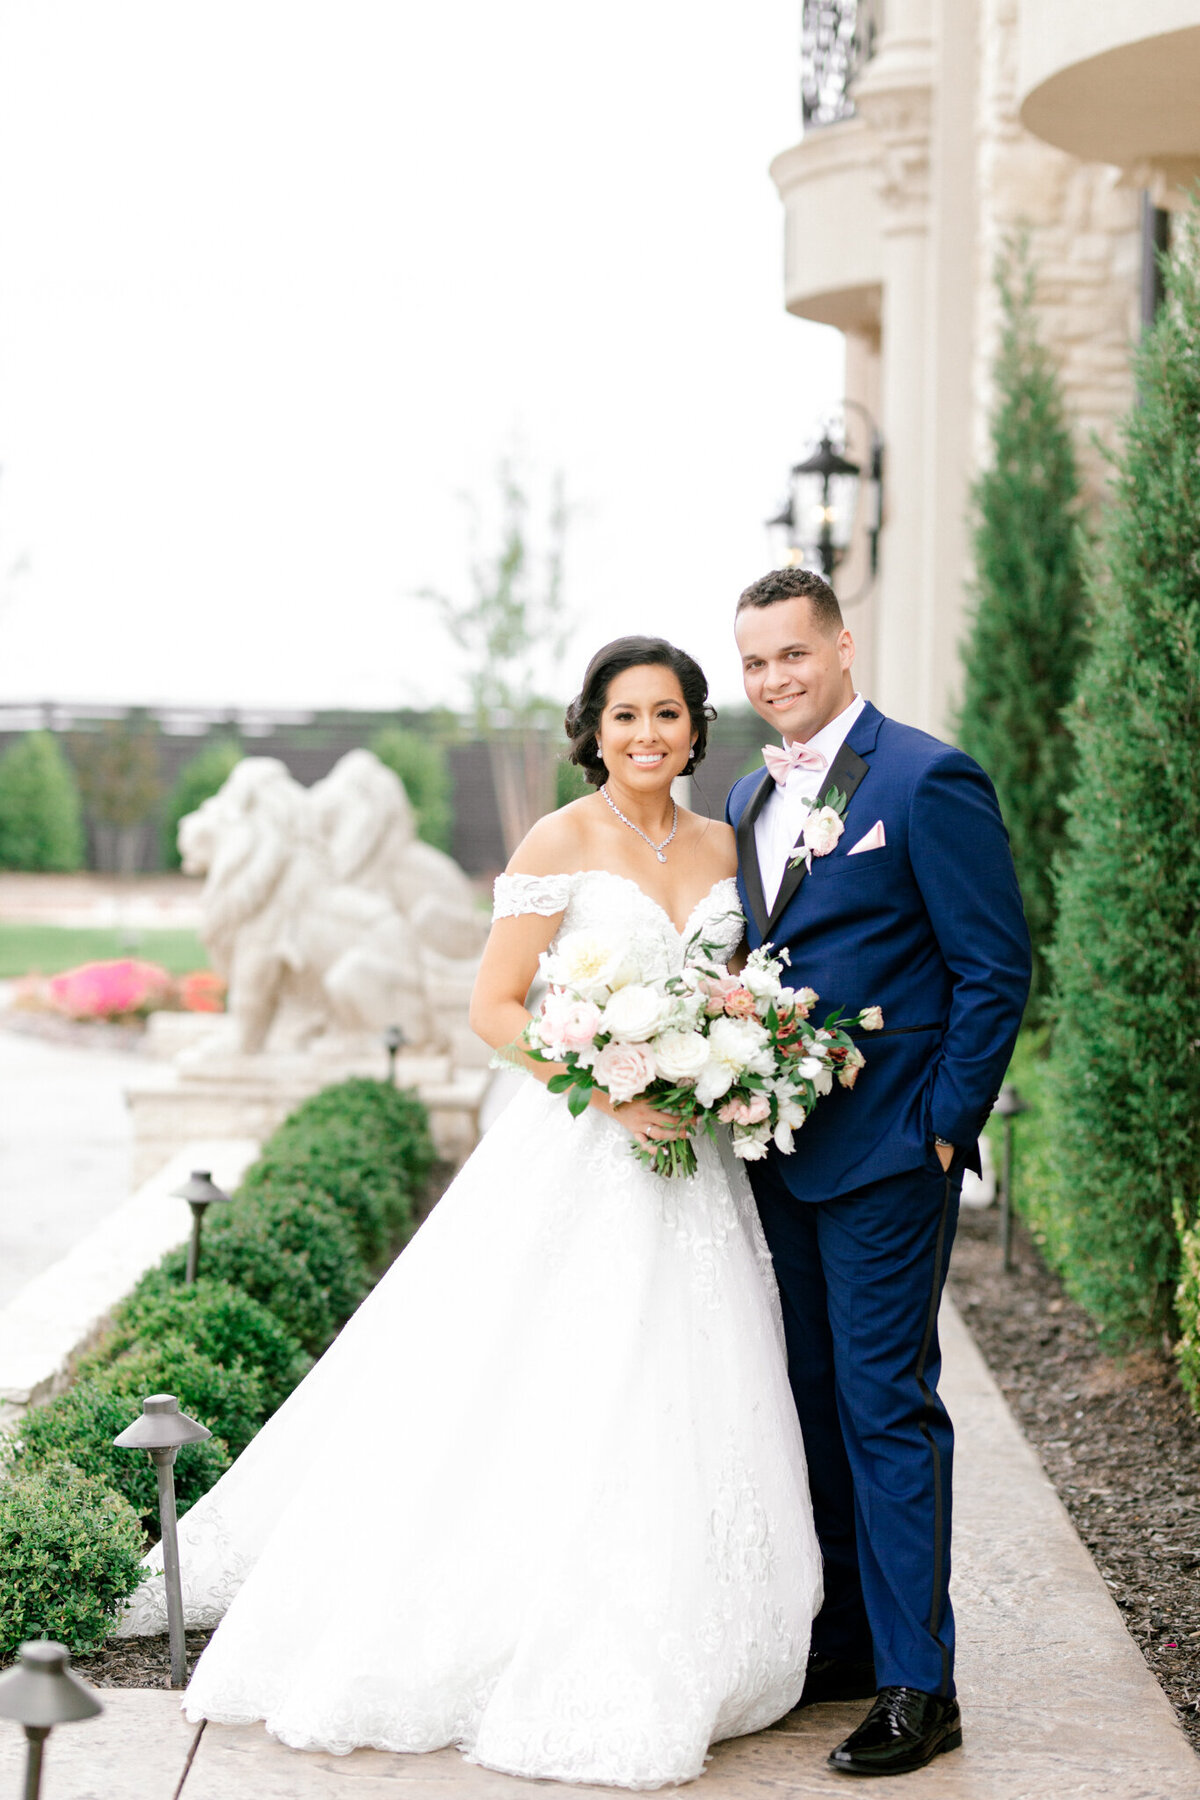 Jasmine & Josh Wedding at Knotting Hill Place | Dallas DFW Wedding Photographer | Sami Kathryn Photography-103